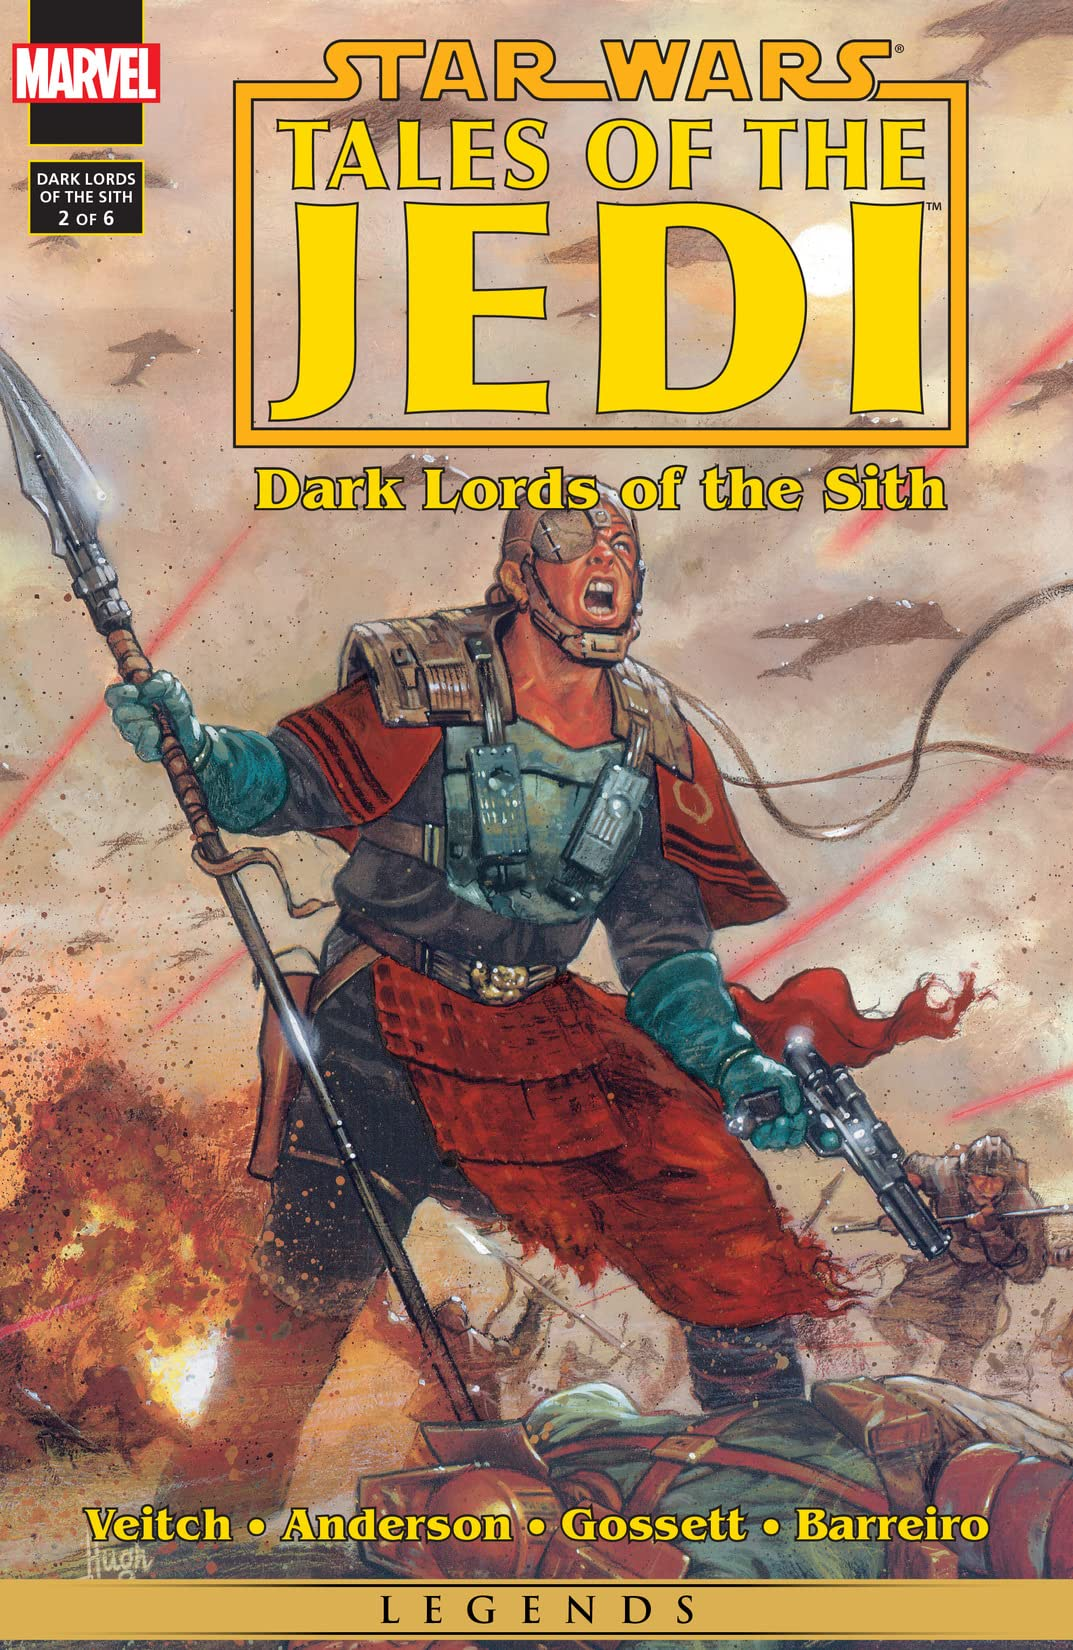 Star Wars: Tales of the Jedi - Dark Lords of the Sith (1994-1995) #2 (of 6)